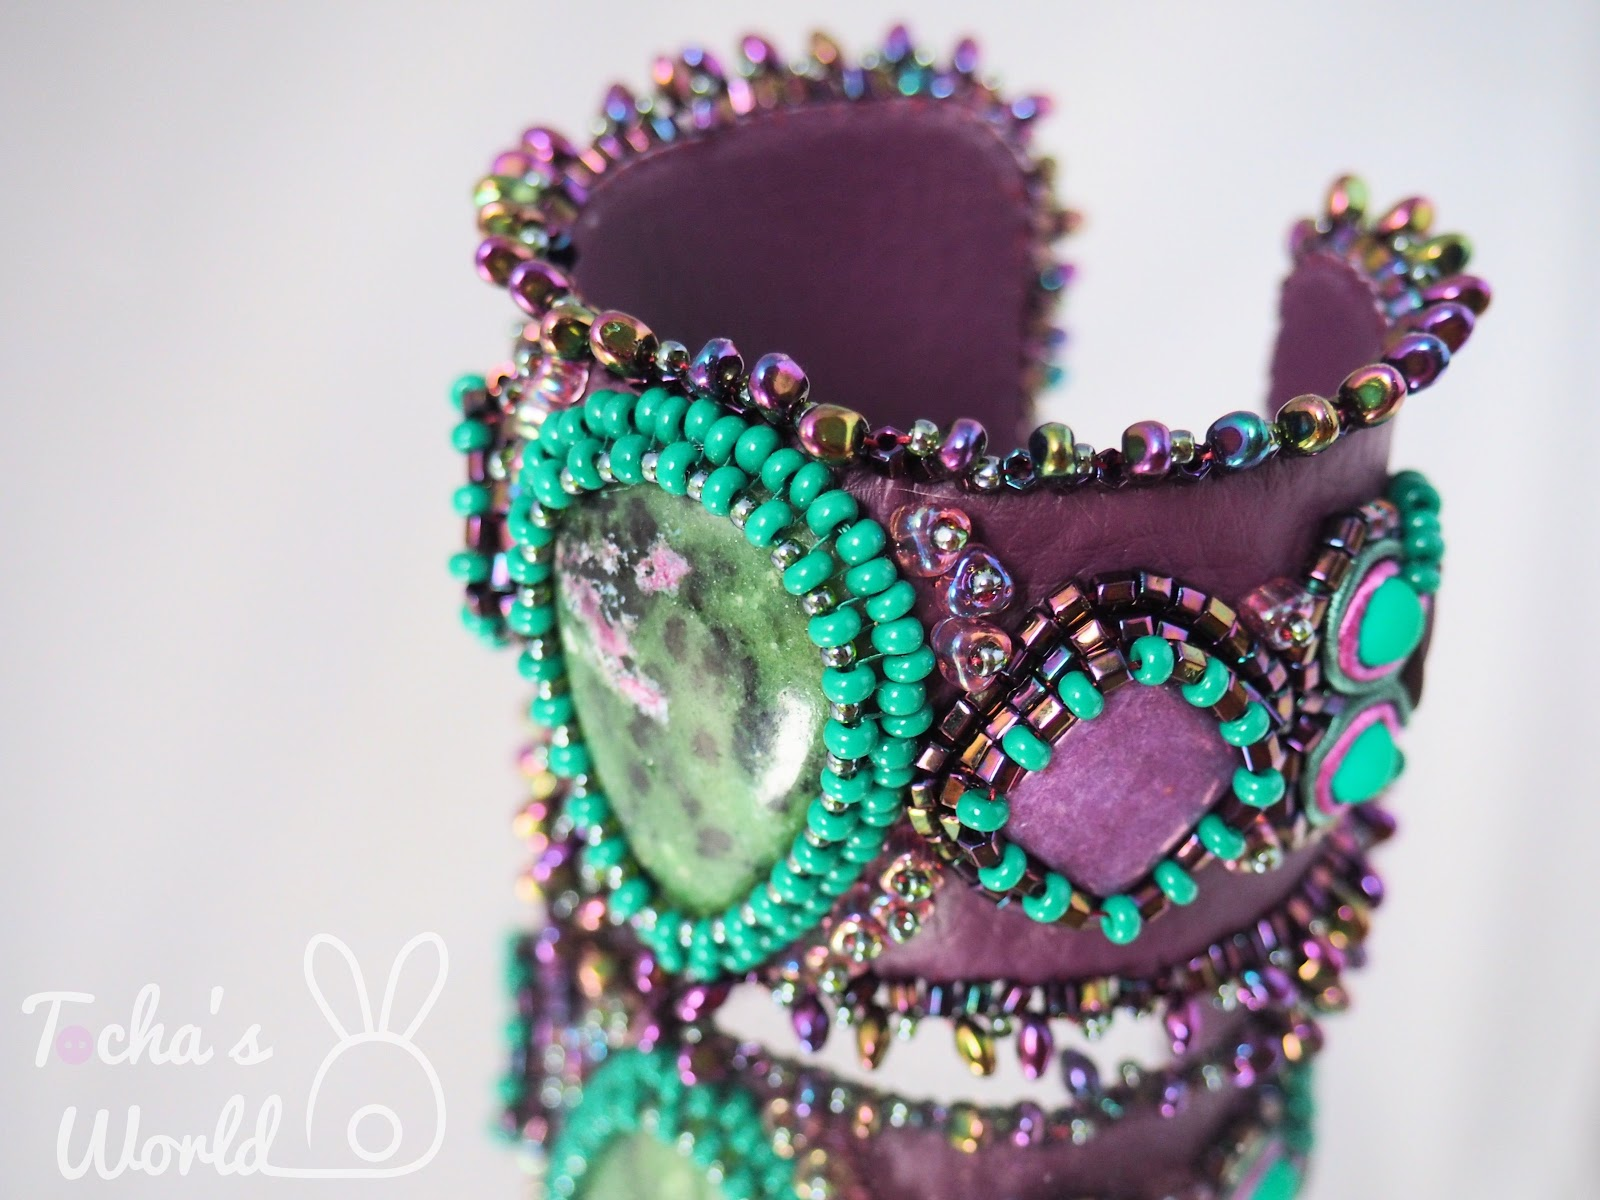 bracelet, bangle, pleather, vegan, beads, beaded, soutache, cabochon, ruby in zoisite, anyolite, semi-precious stone, purple, green, Toho, Preciosa, ethical fashion, Miyuki, hematite, Pollok House, Scotland,